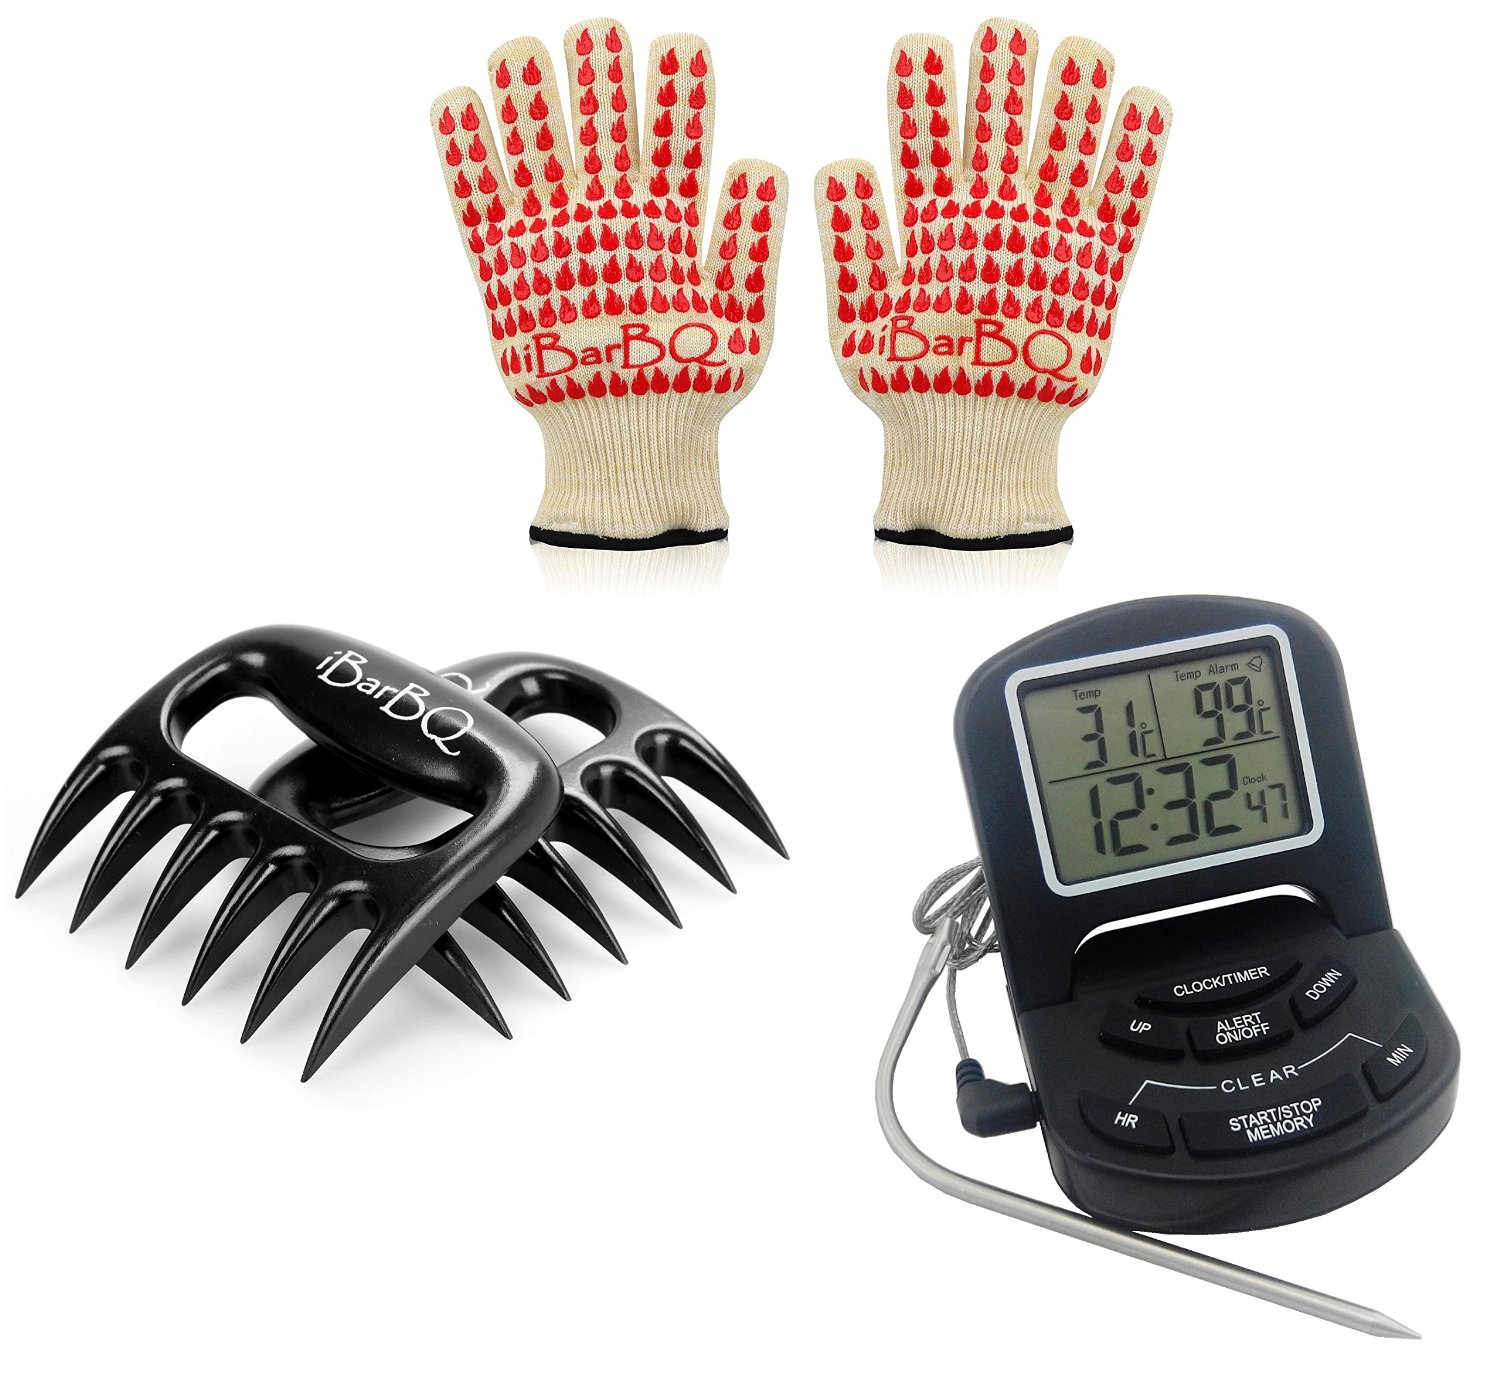 Best Barbecue Mates Ever!--- Digital BBQ Grill Food Probe Thermometer Cooking Thermometer/Timer with Alarm + Meat handling & Shredding Claws for Pulled Beef, Pork, Chicken, Turkey + SUPERIOR COMFORT Barbecue-Grille-Smoker-Oven Heat Protection Gloves Which Withstand 662 degrees F (350C)--- #1 Best